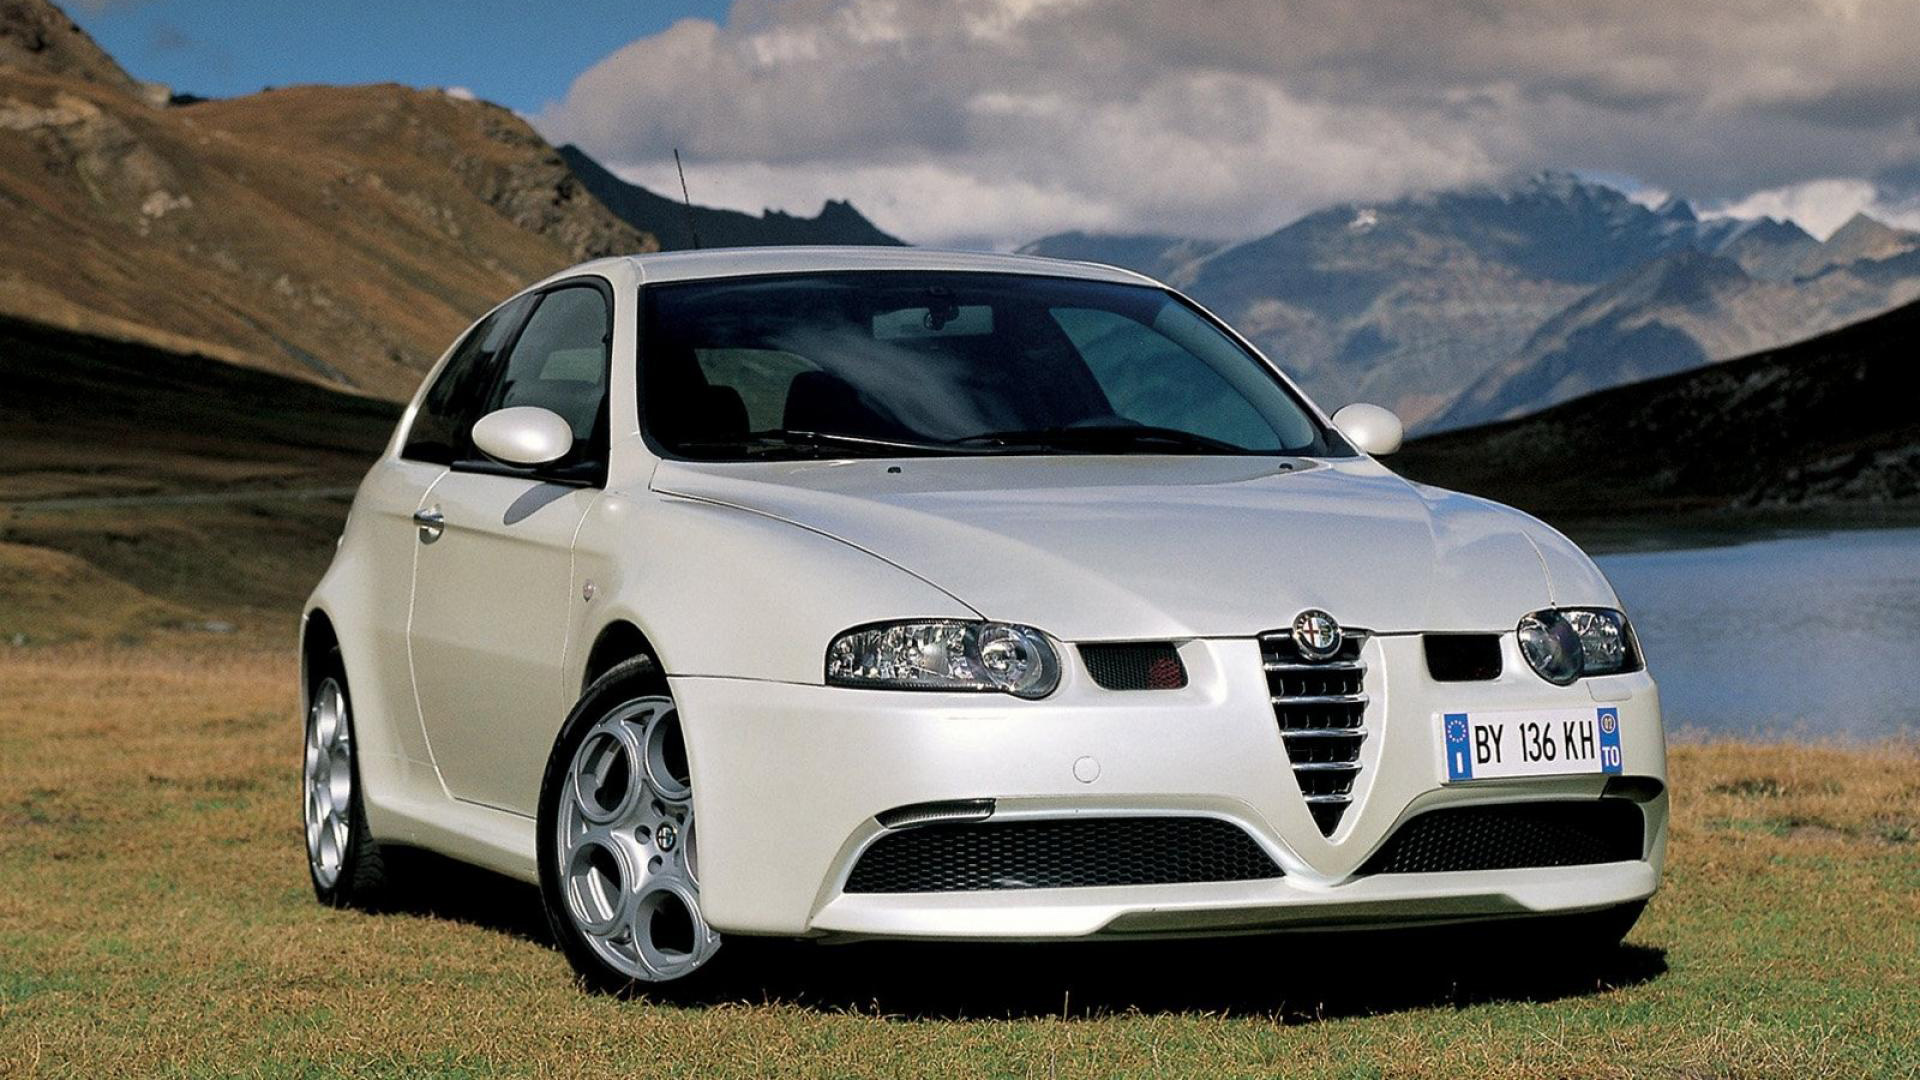 1920x1080 - Alfa Romeo 147 Wallpapers 21